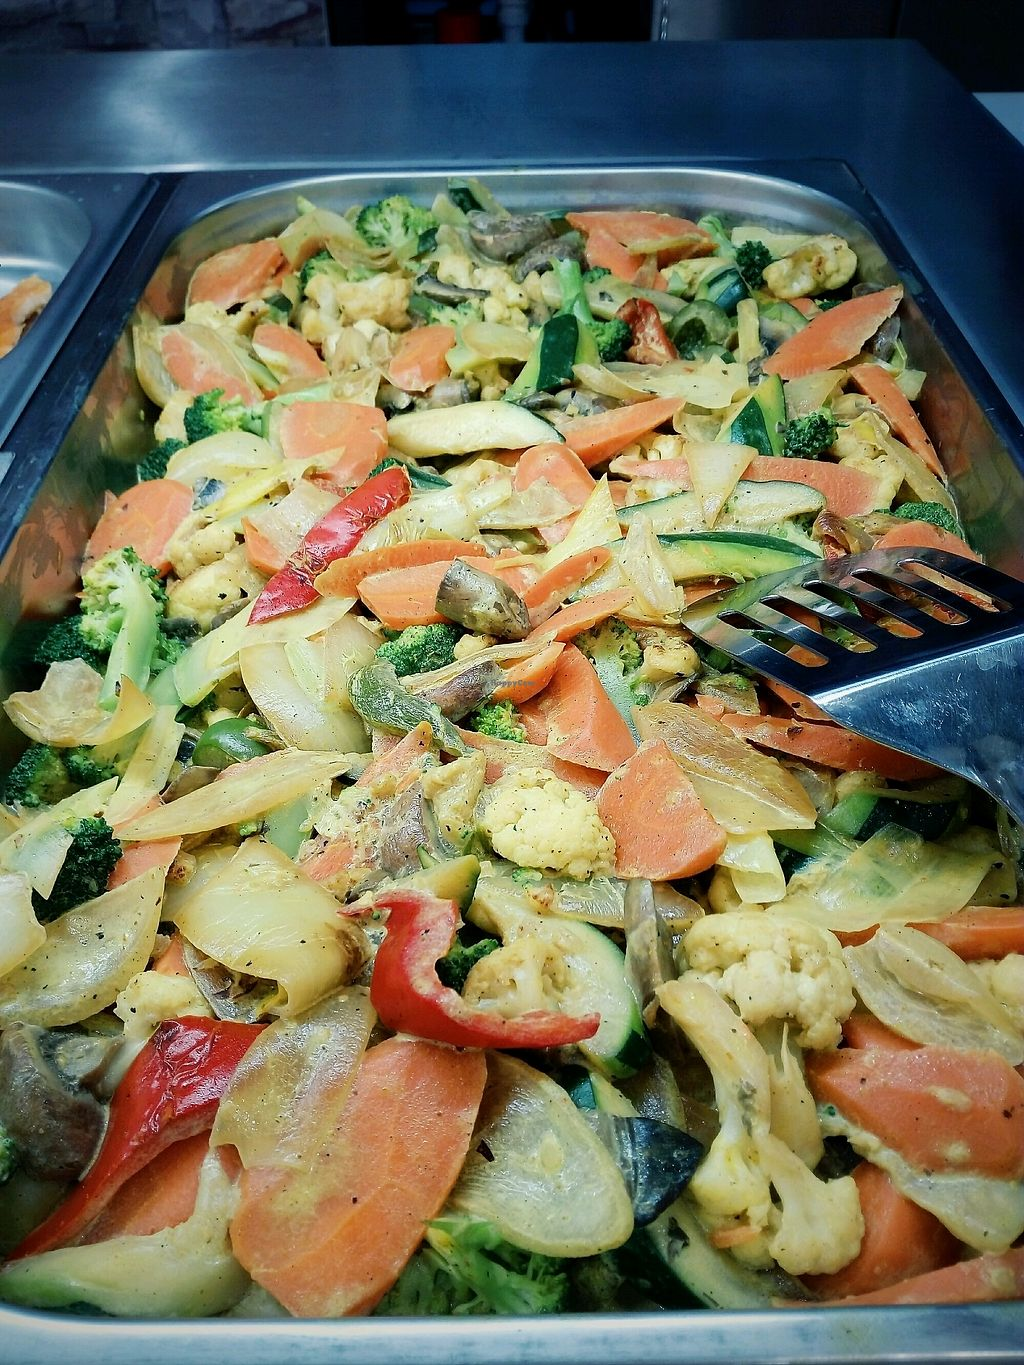 """Photo of Lidia's Health Food  by <a href=""""/members/profile/MarianaLois"""">MarianaLois</a> <br/>Vegetable Curry <br/> November 25, 2017  - <a href='/contact/abuse/image/105930/329139'>Report</a>"""